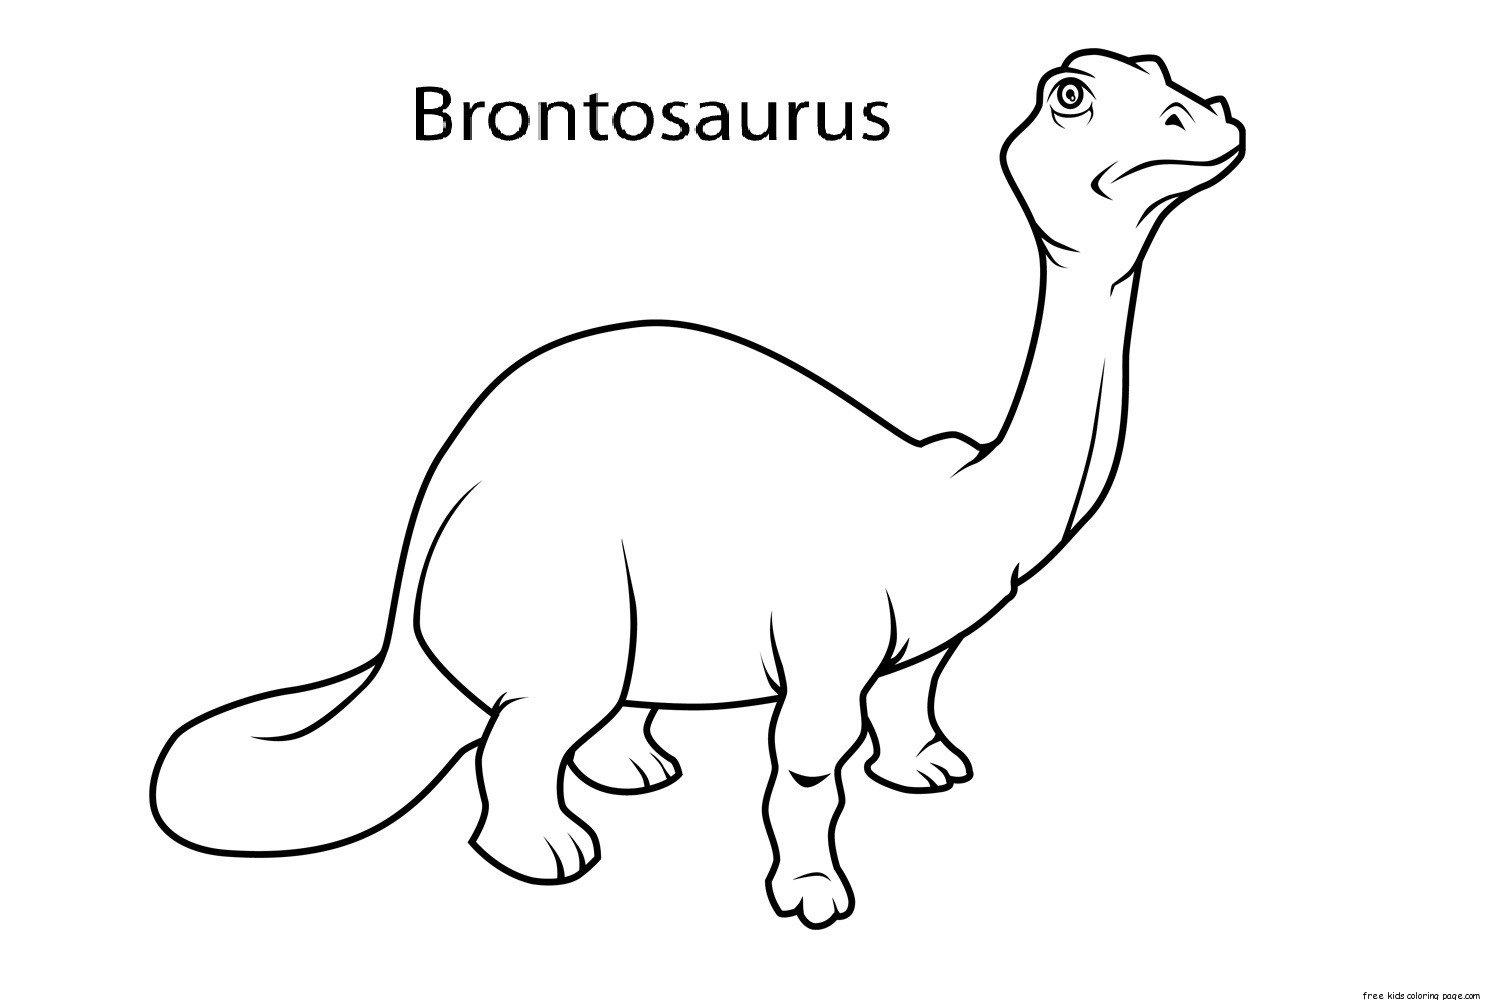 brontosaurus dinosaur coloring pages for kindergartenfree